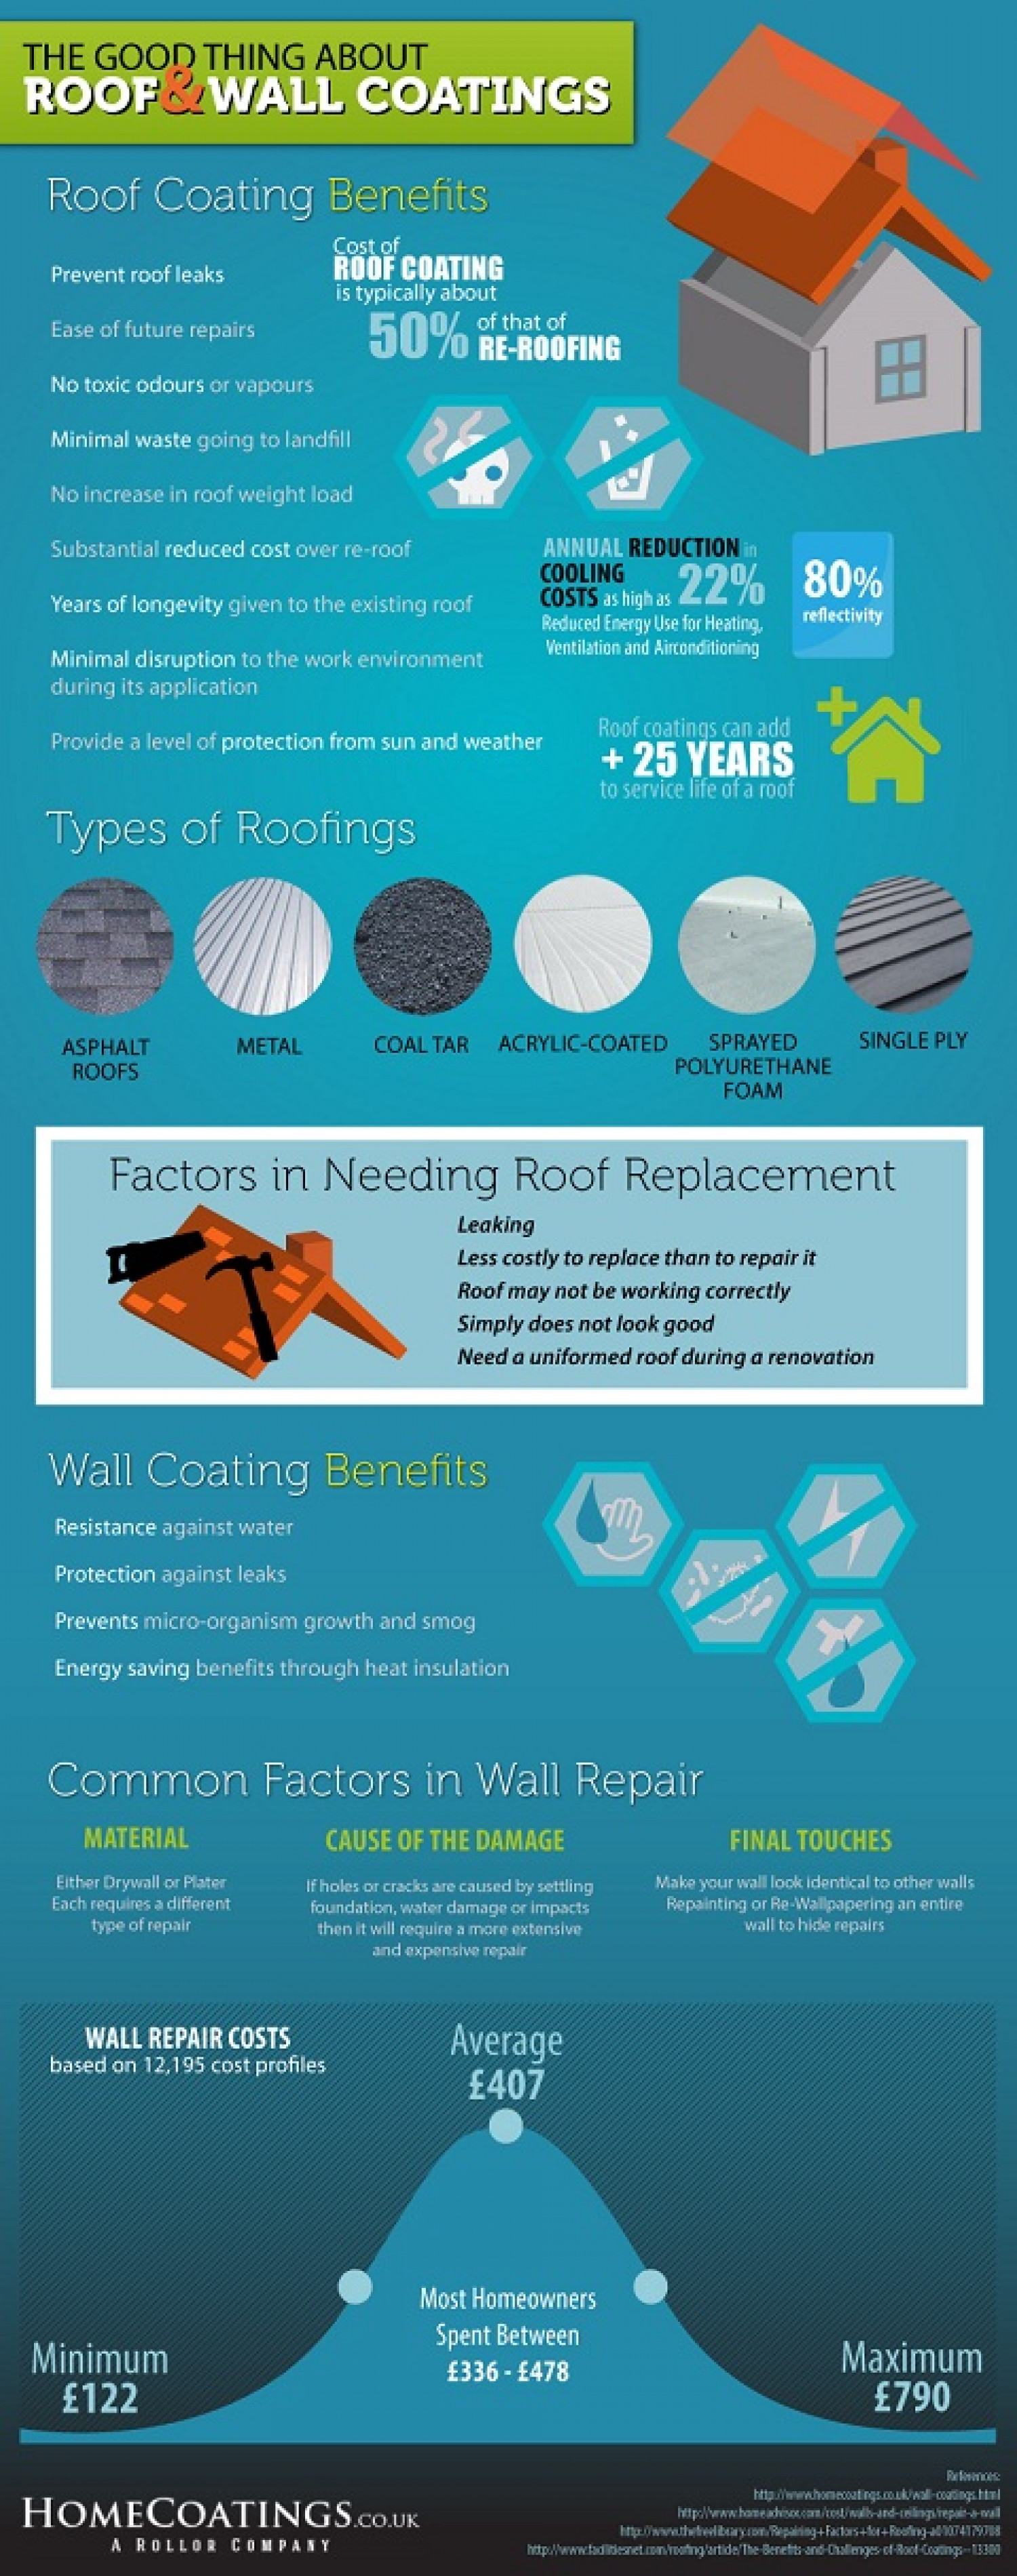 The Good Thing About Roof and Wall Coatings Infographic